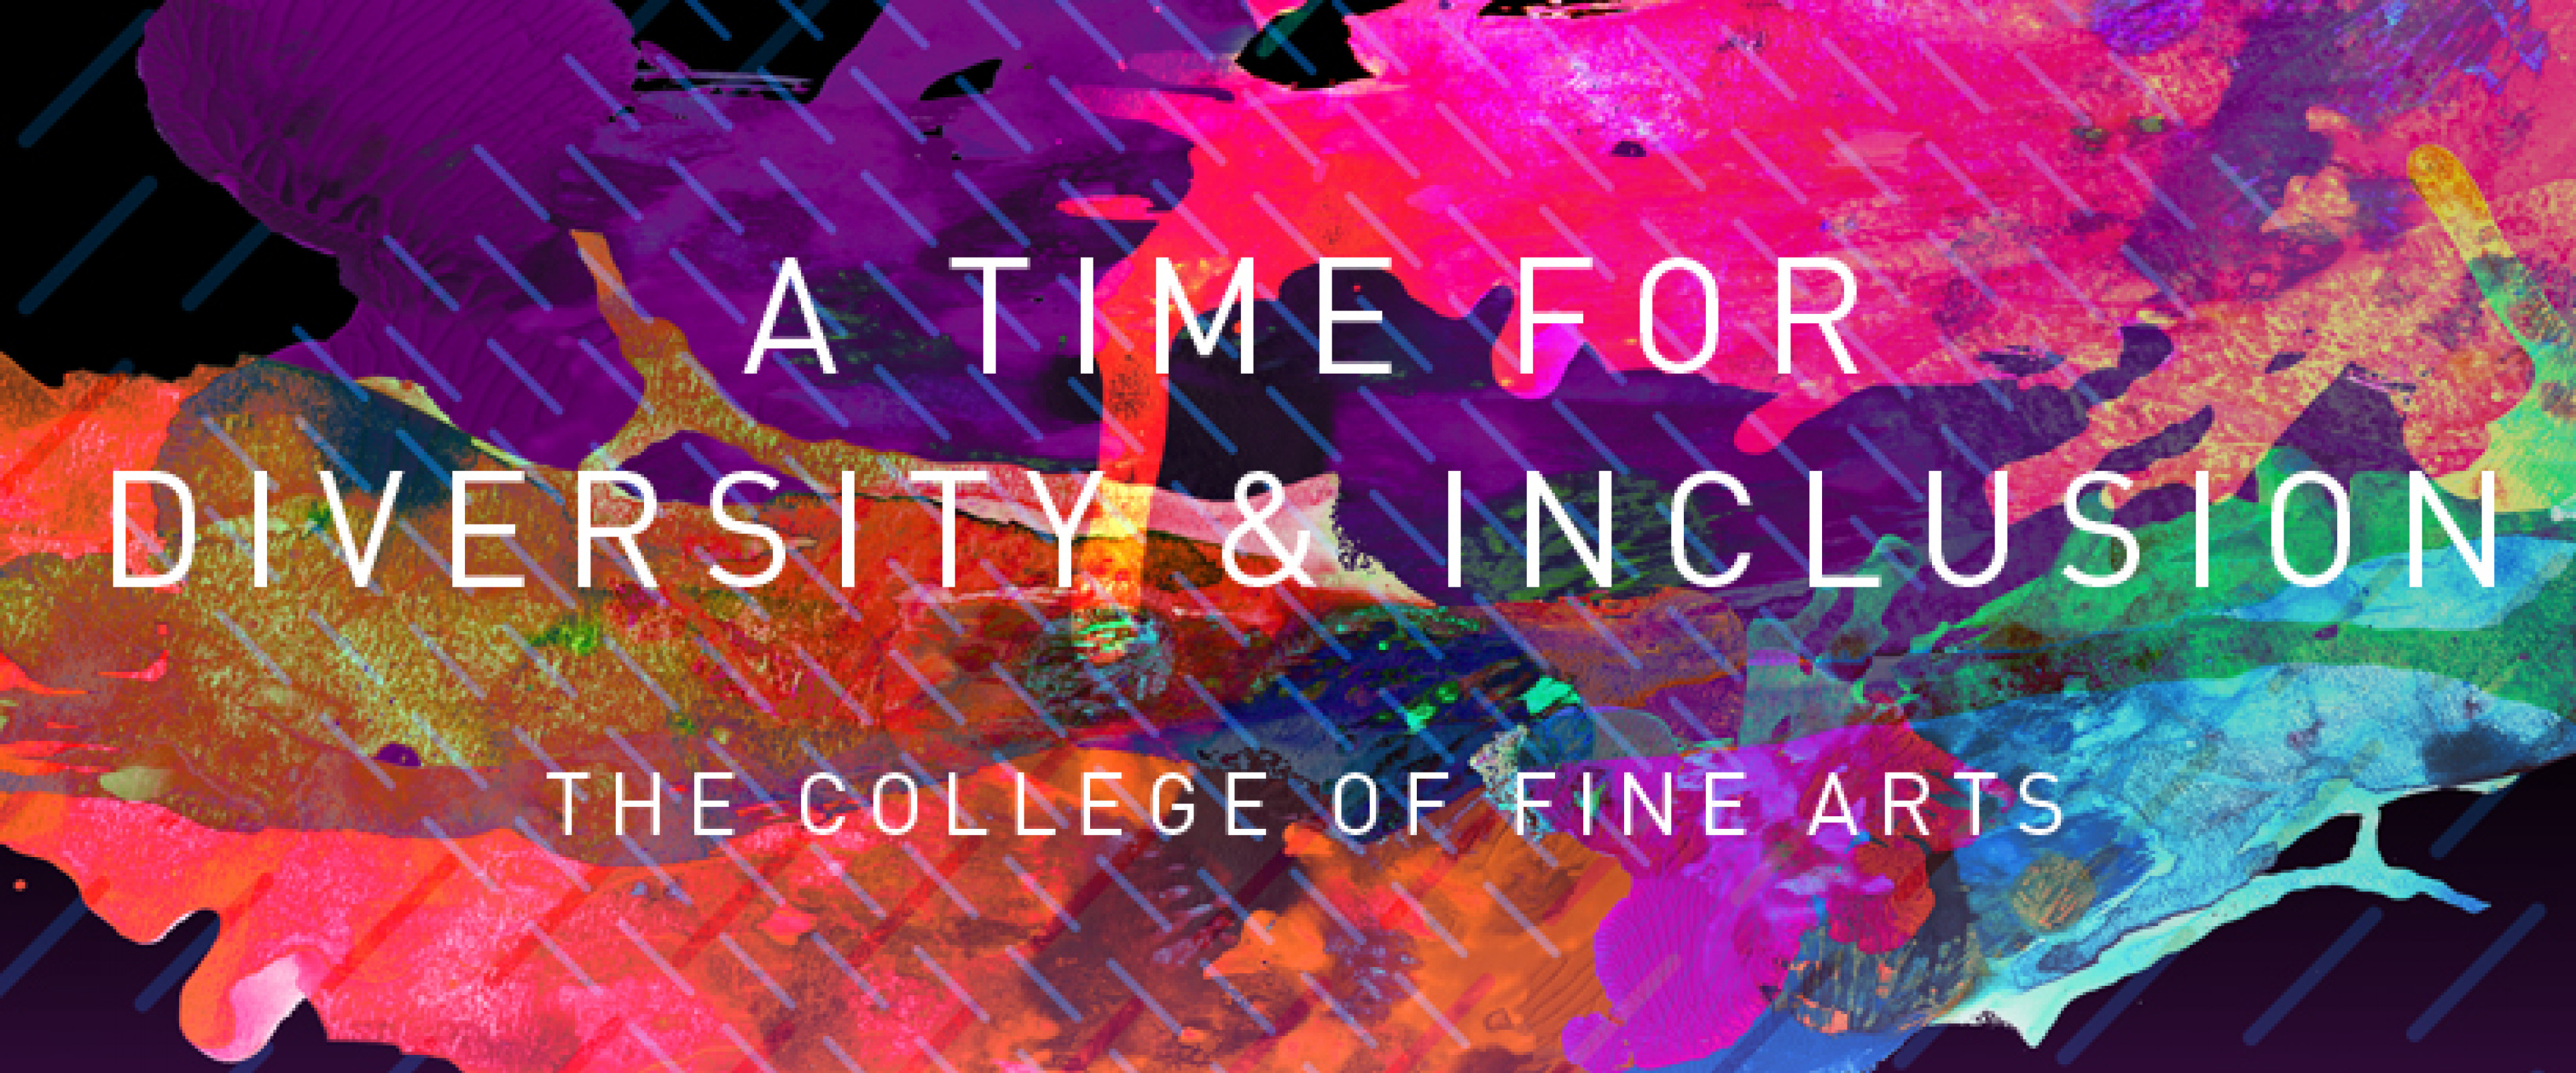 A time for diversity and inclusion, the College of Fine Arts.